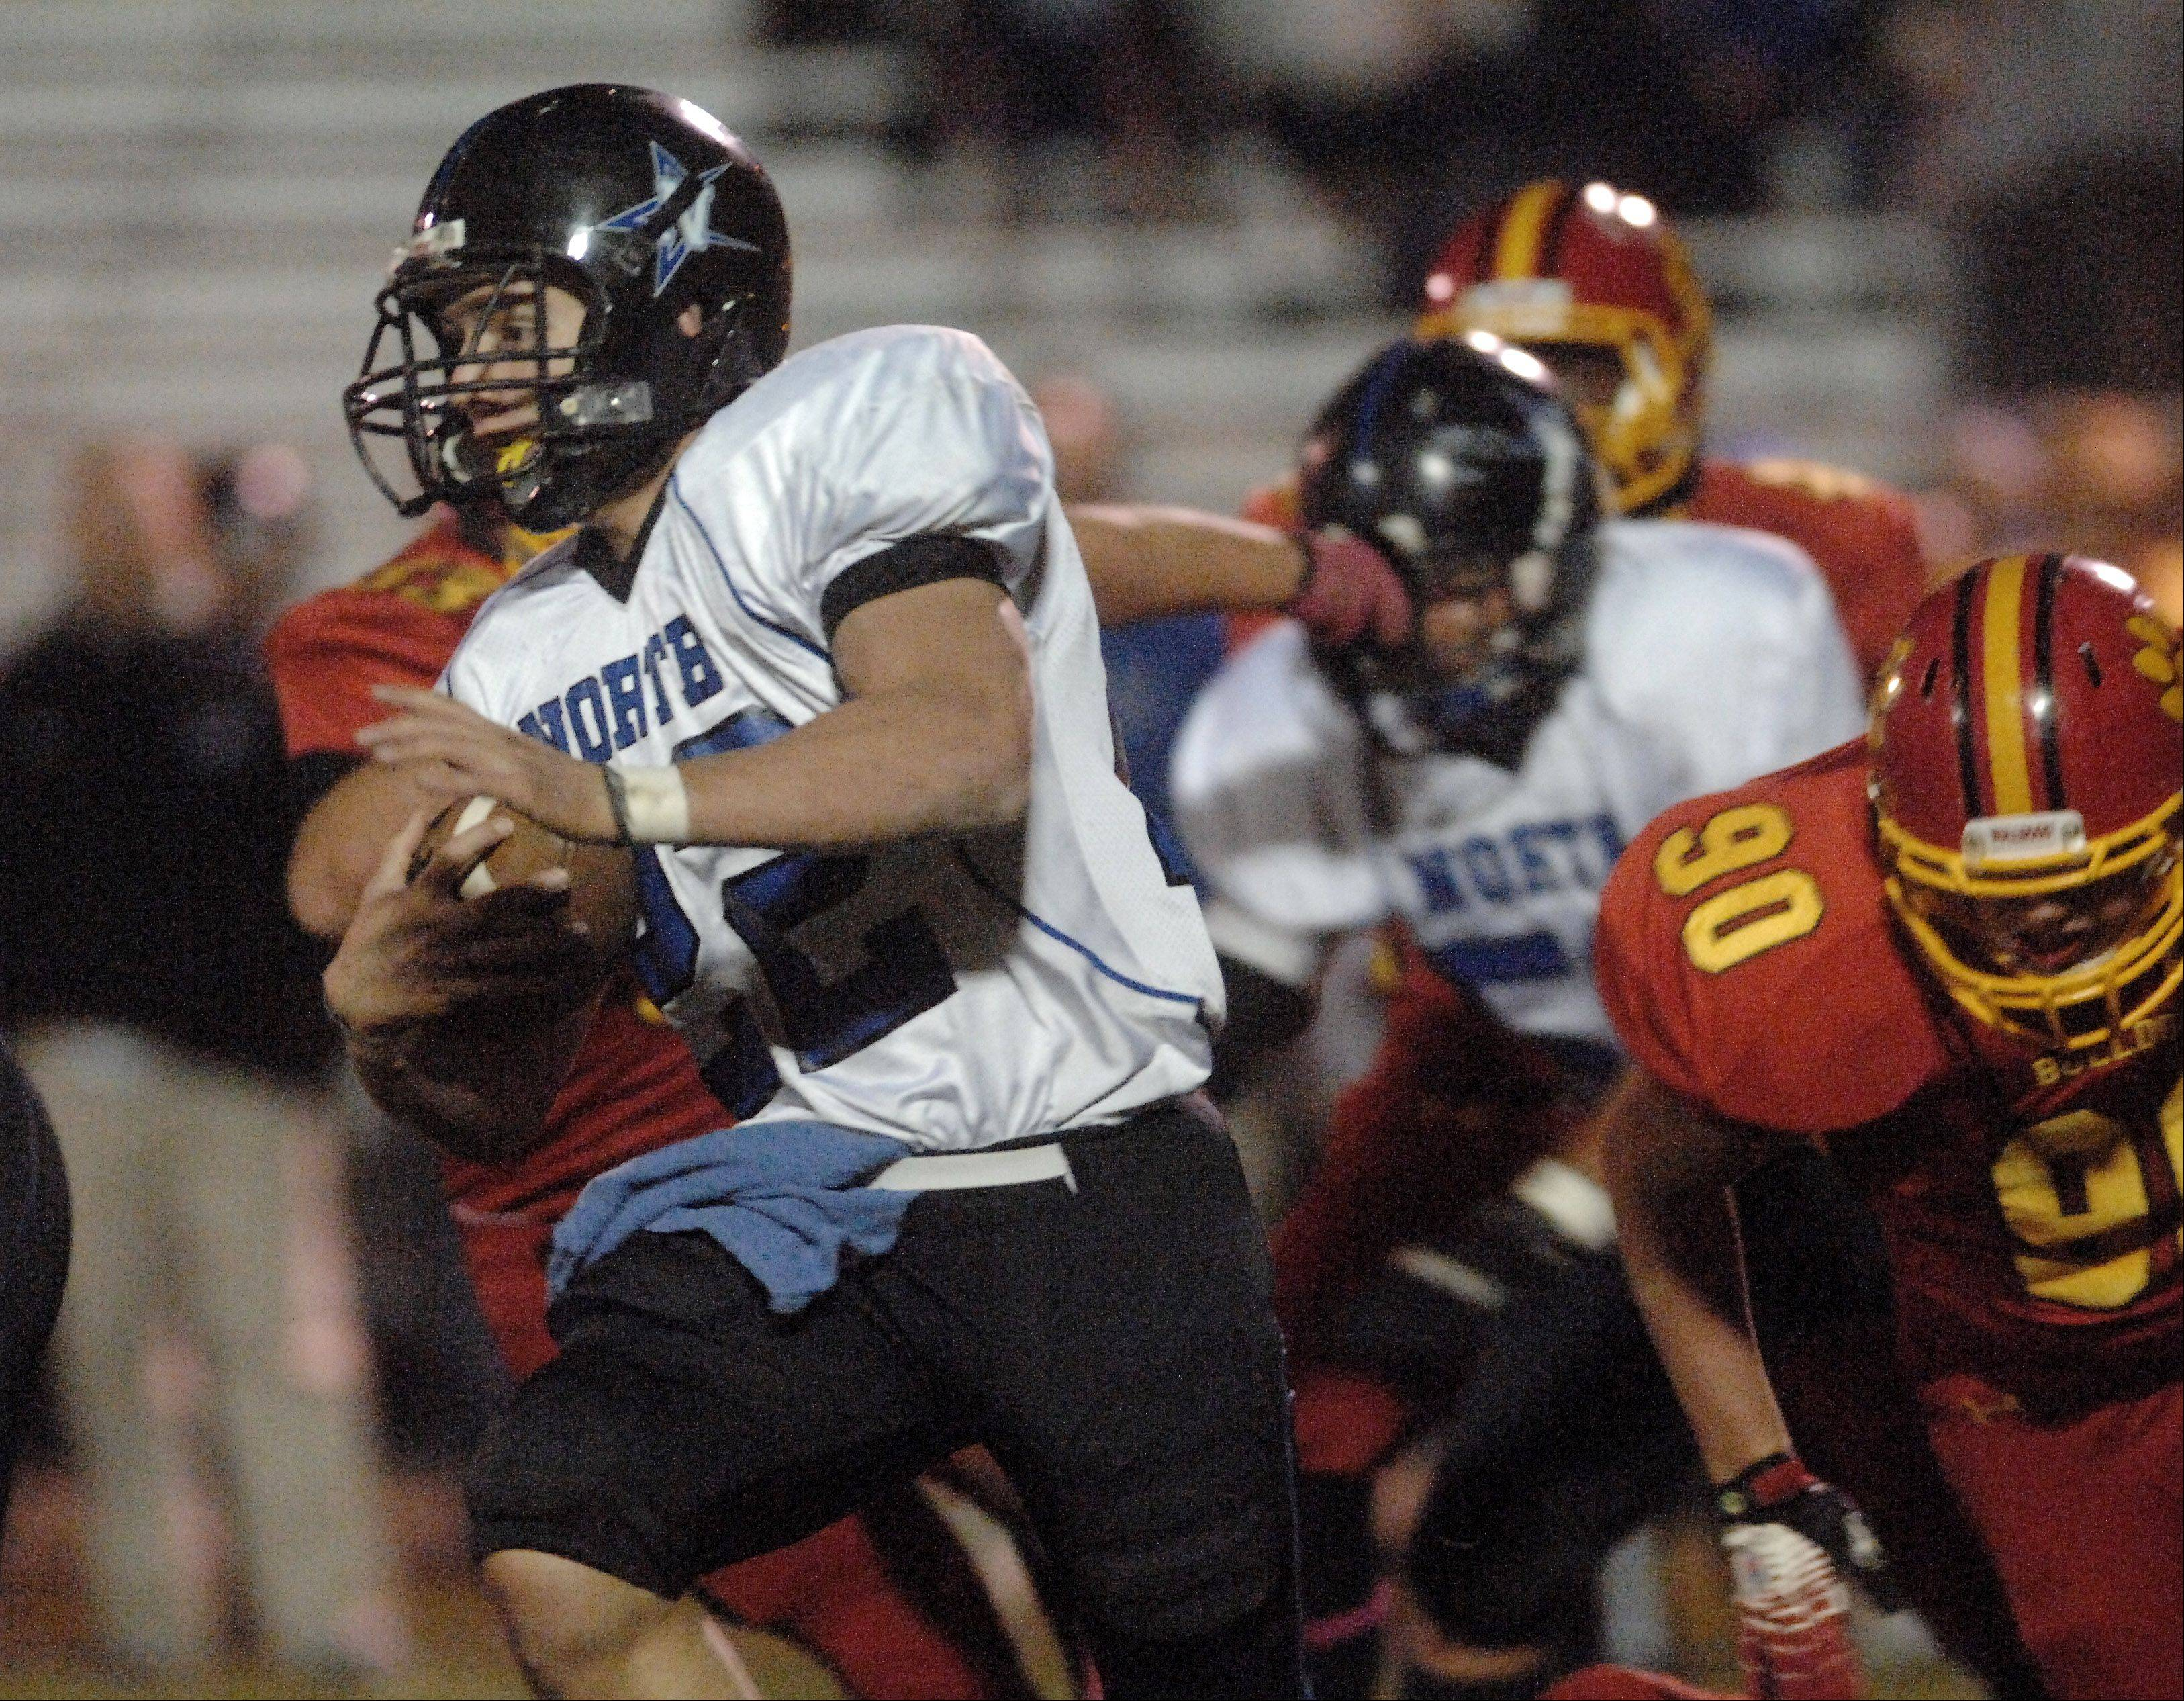 St. Charles North's George Edlund finds some room to run.